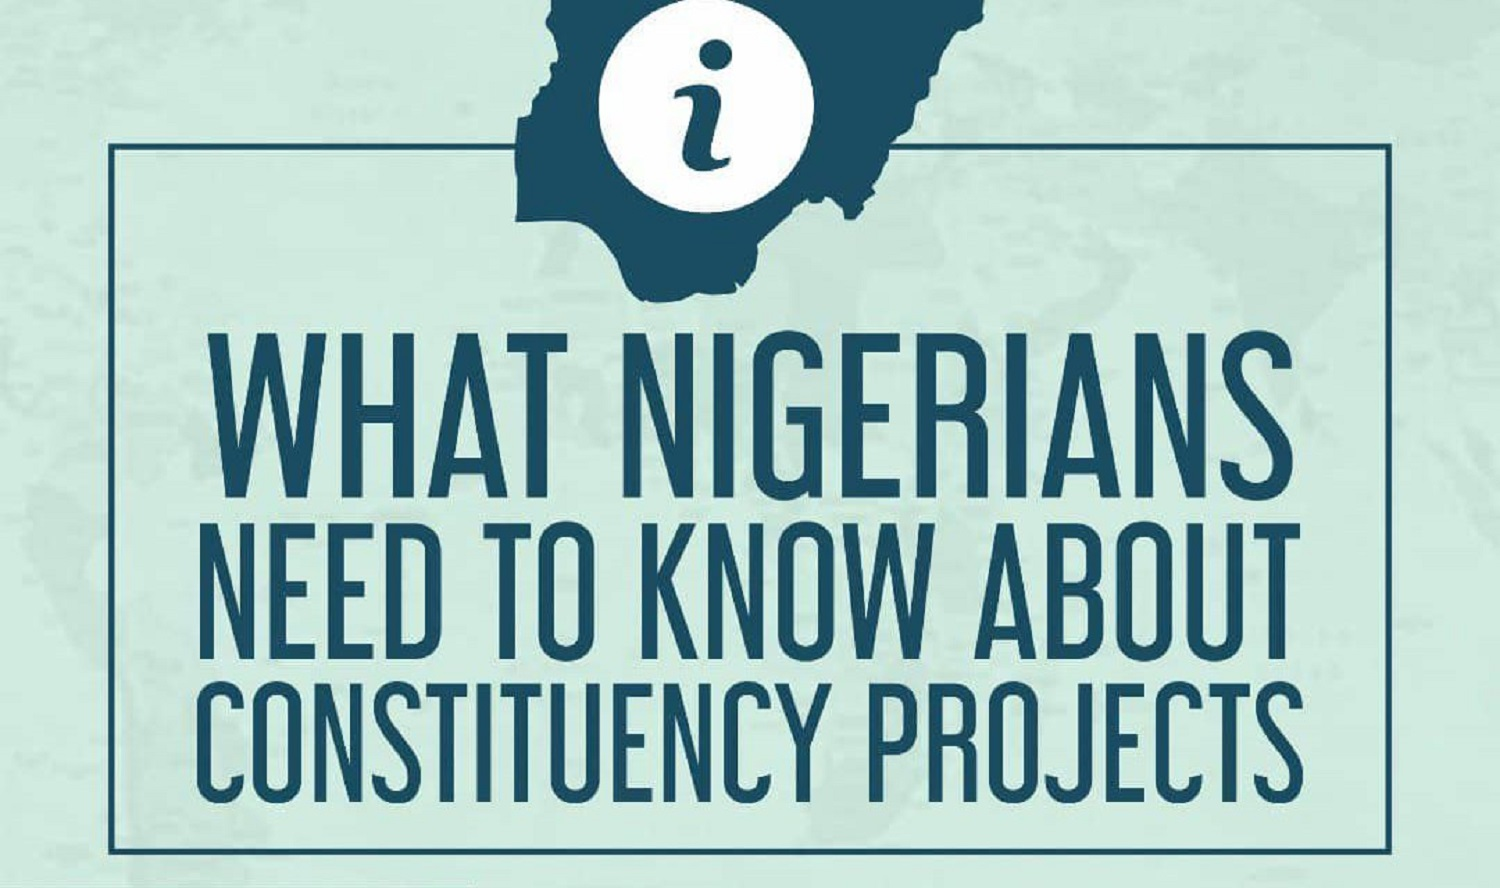 Constituency projects, presidency, agriculture, Senate, Buhari